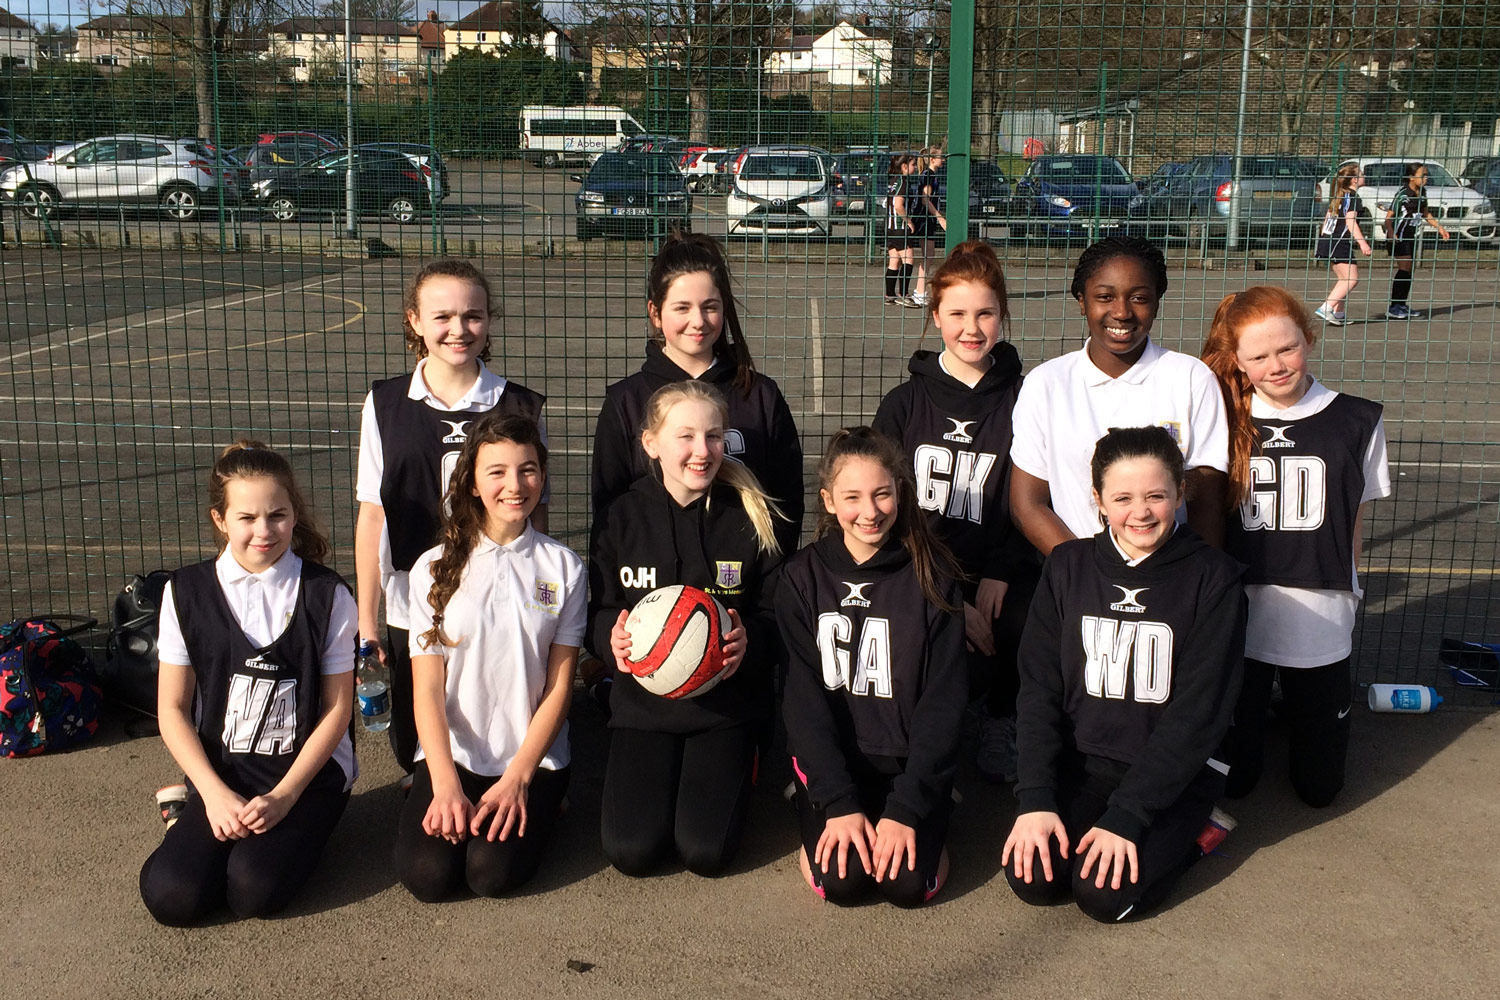 Photo: We are looking forward to the Netball season